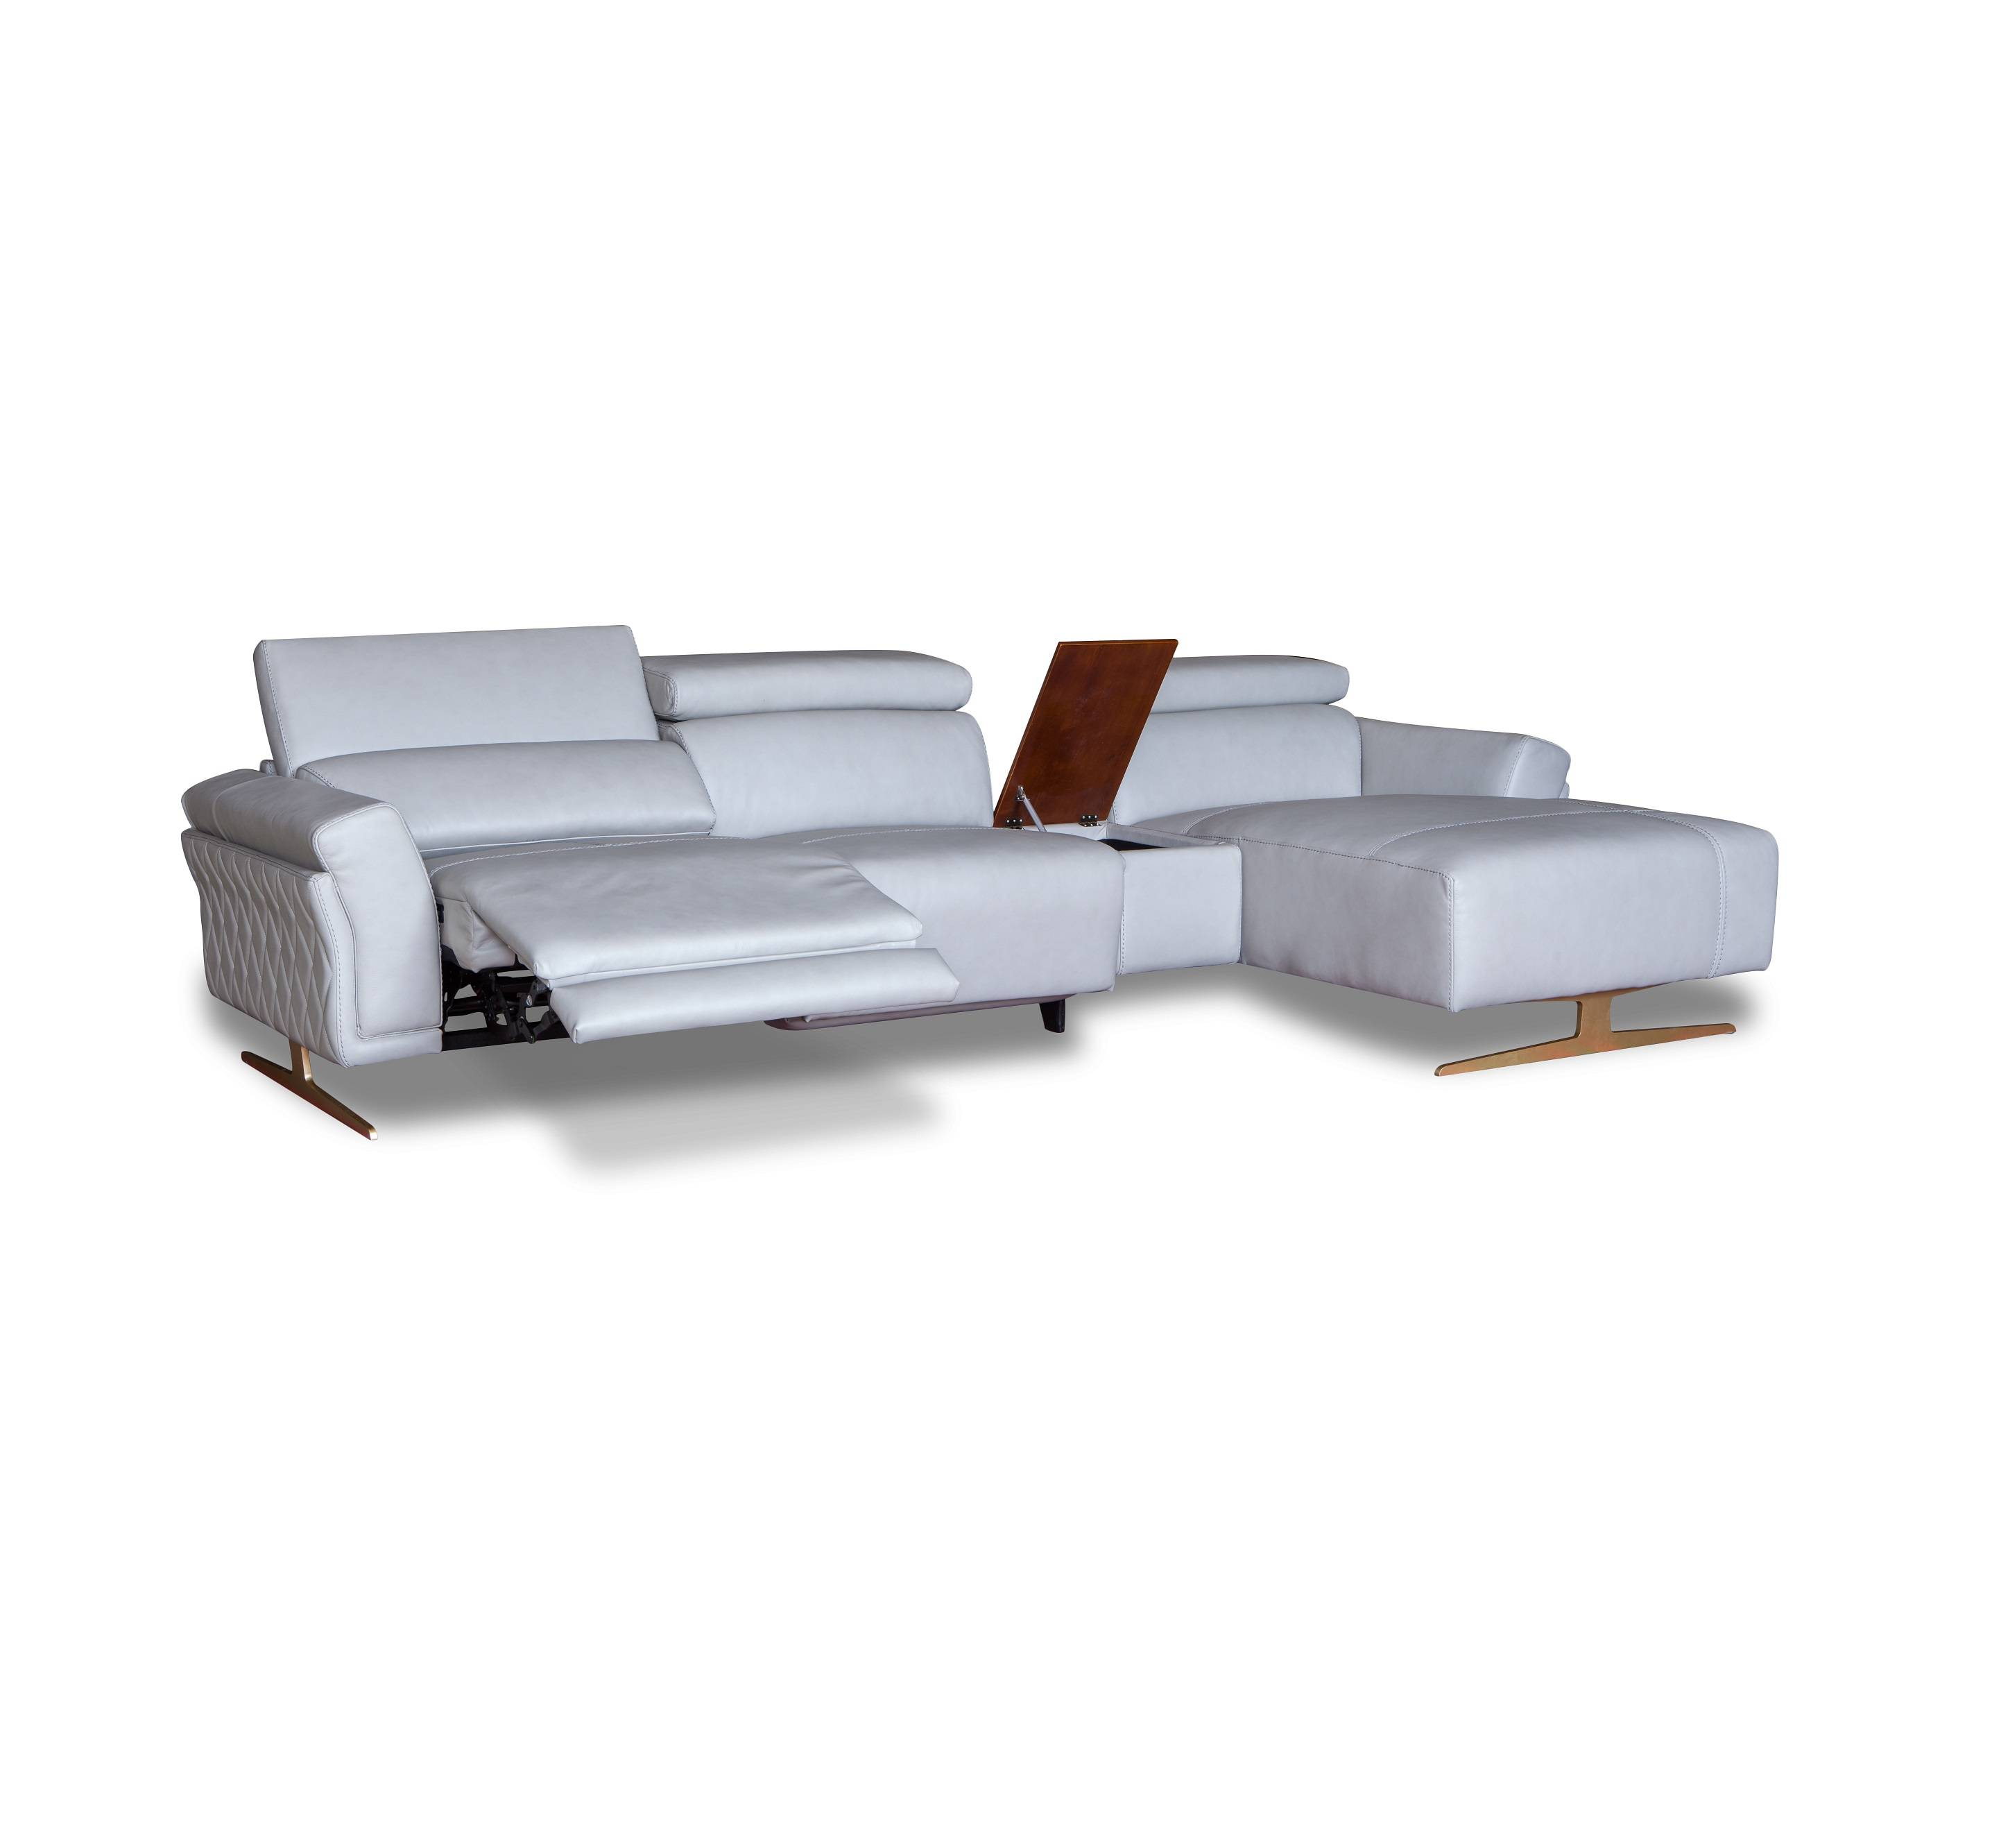 European simple style white leather corner sectional lounge recliner